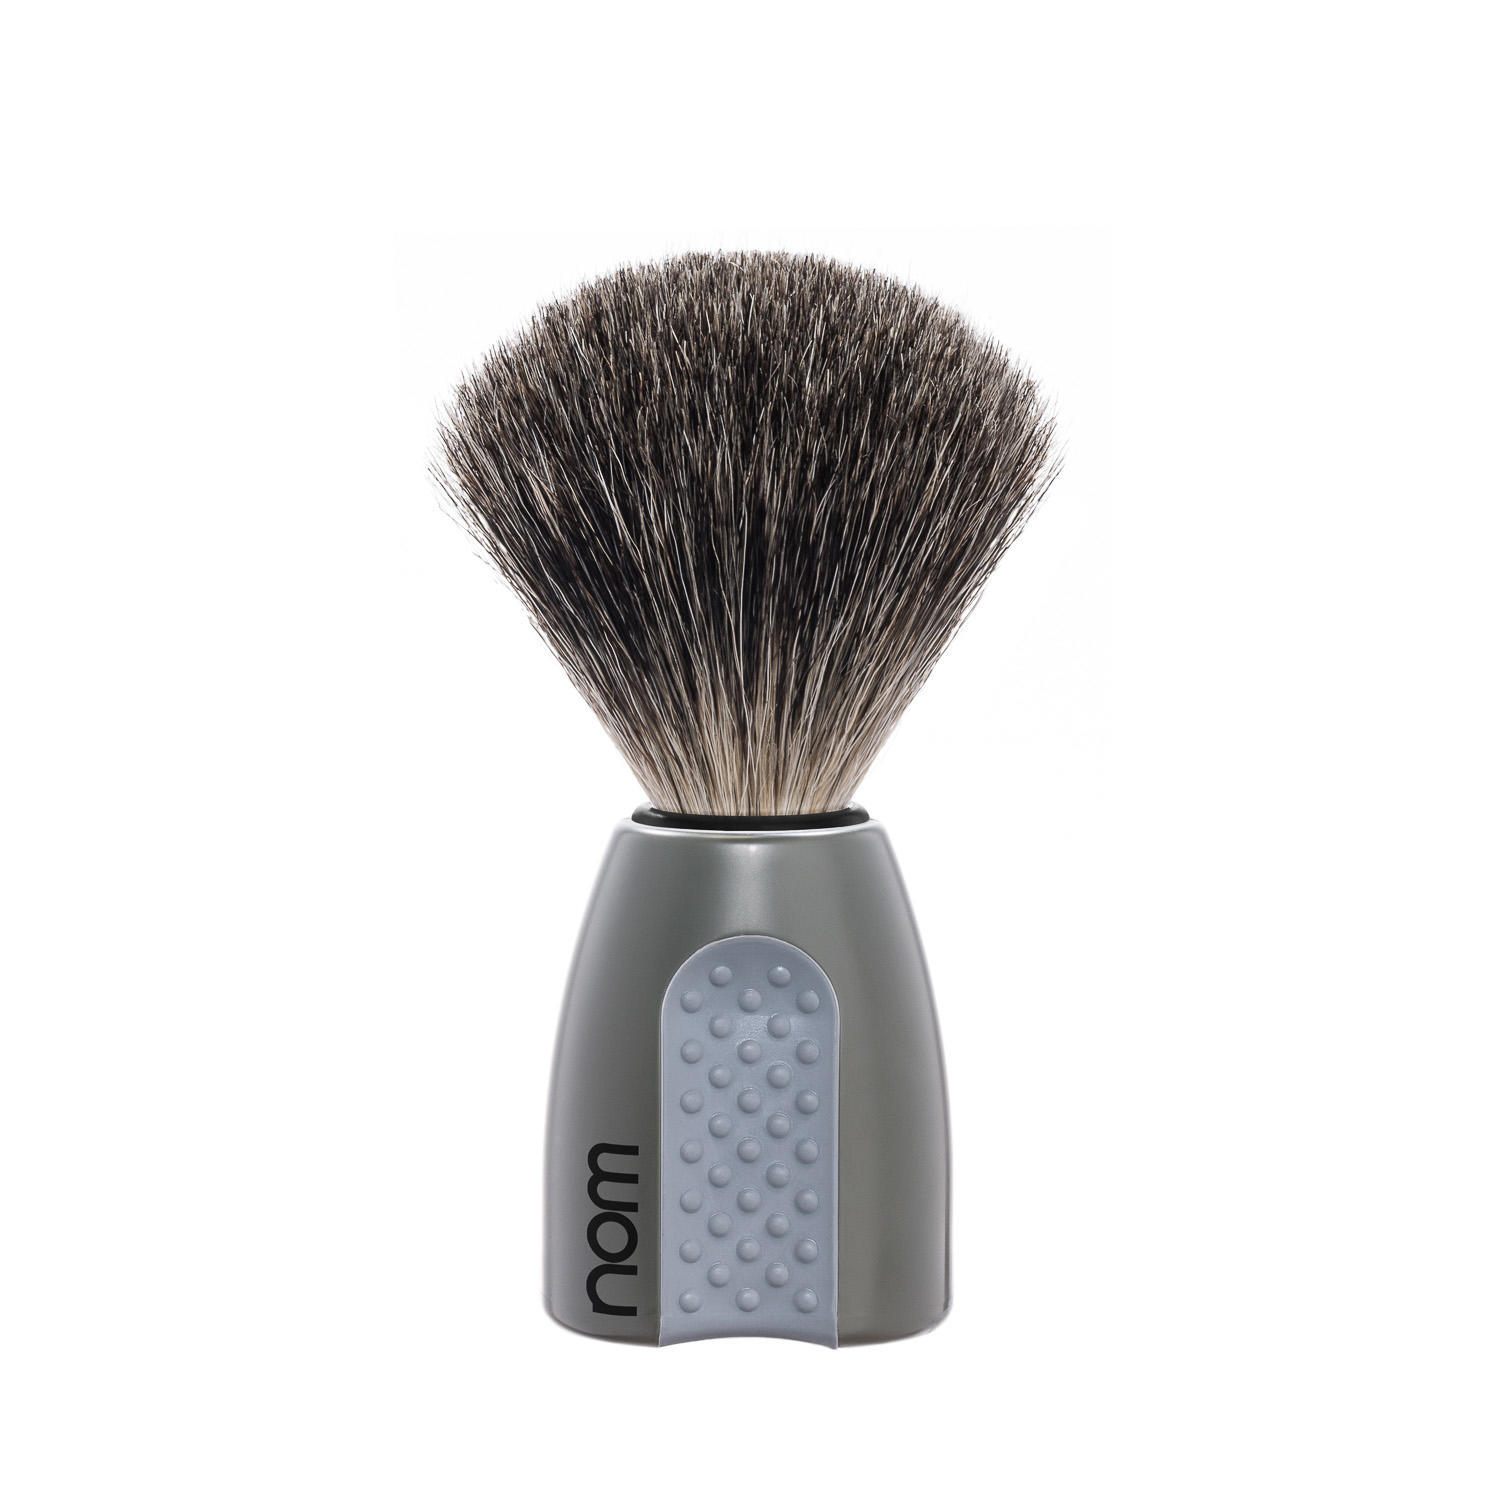 ERIK81GR NOM, ERIK grey, pure badger shaving brush